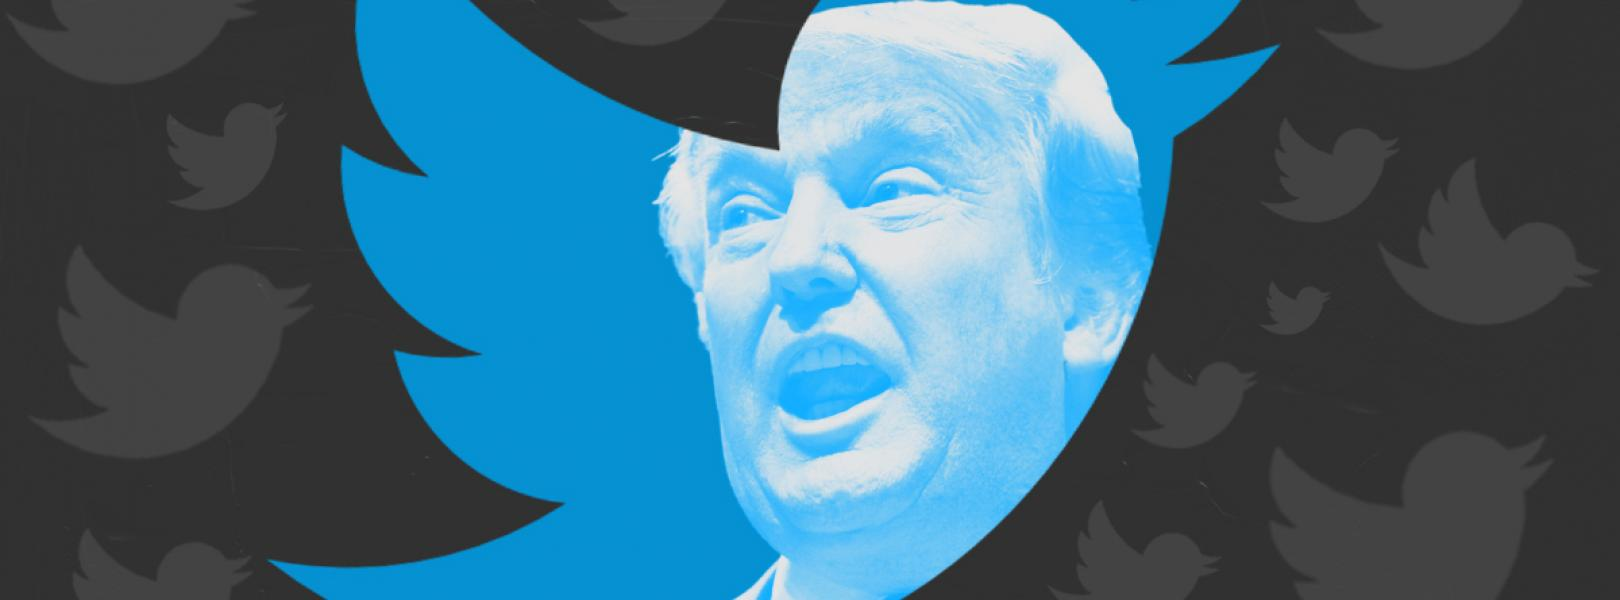 Donald Trump and Twitter